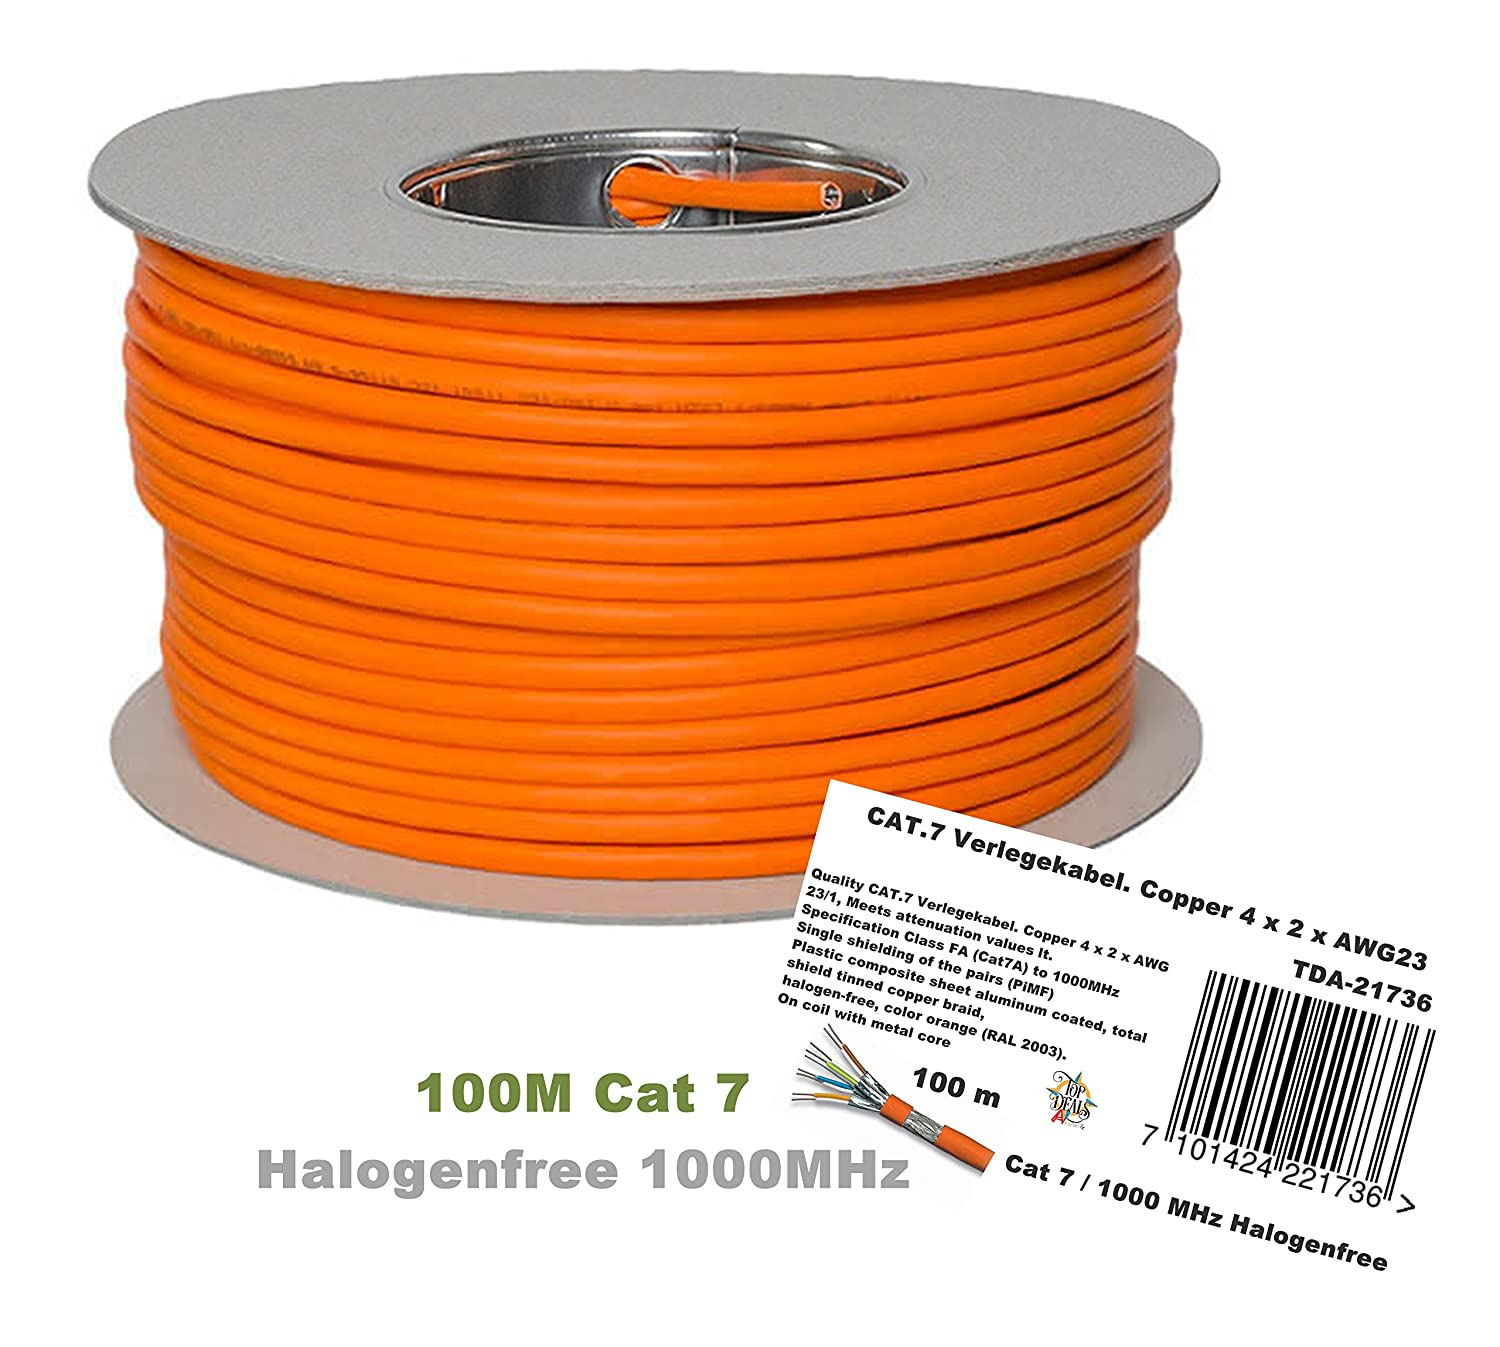 Tda 100m Cat 7 Reel Ethernet Cable Halogen Free Aluminum Or Copper Wiring Electronics